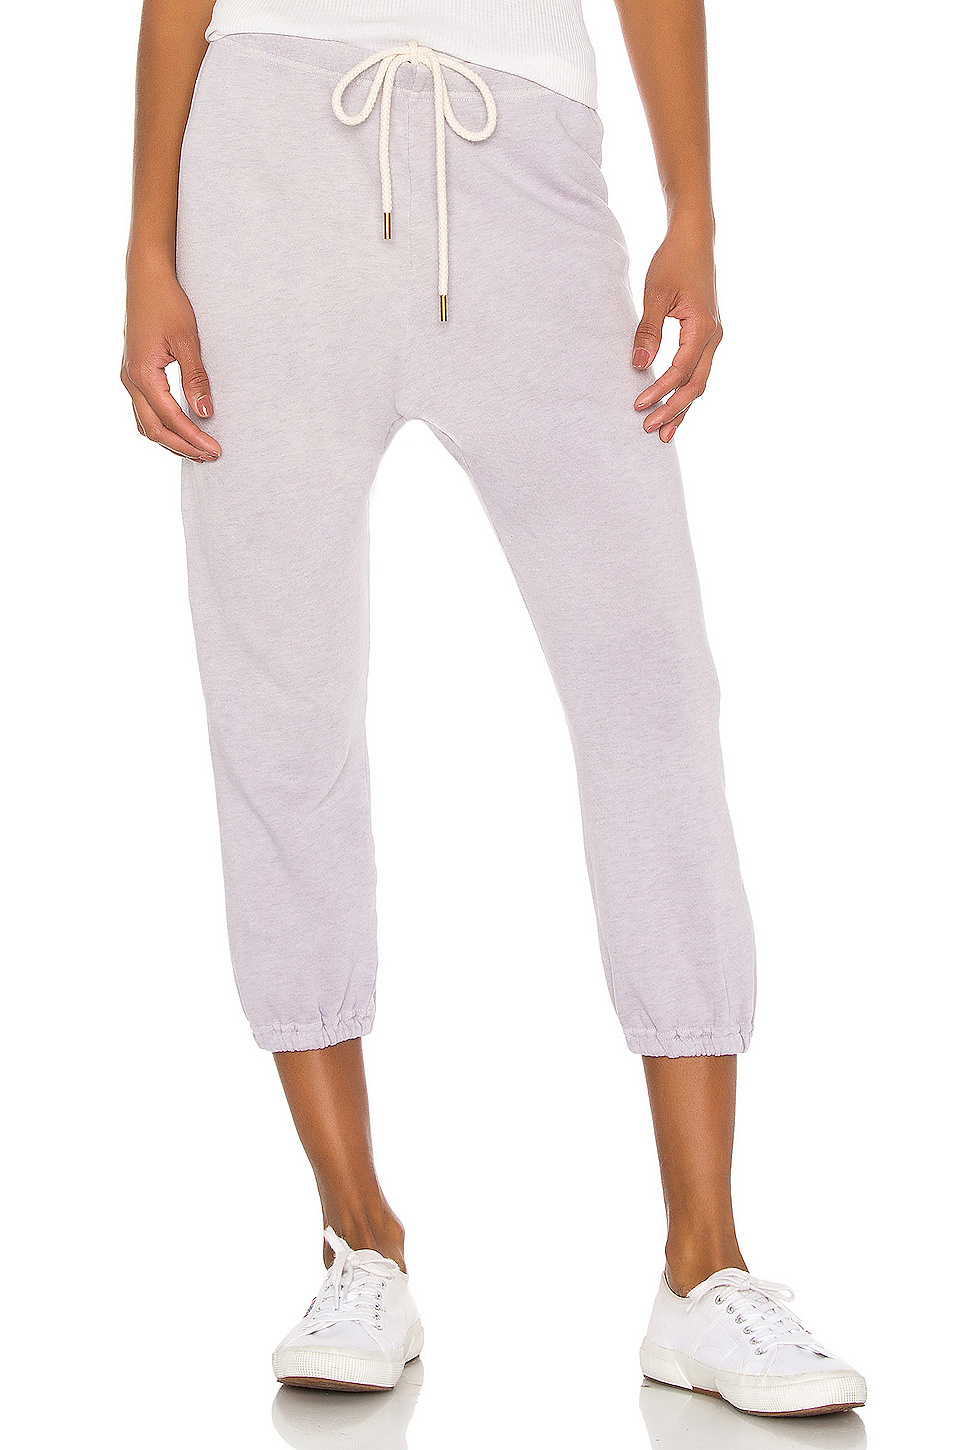 The Great The Great Stadium Cotton Sweatpant - Multiple Colors